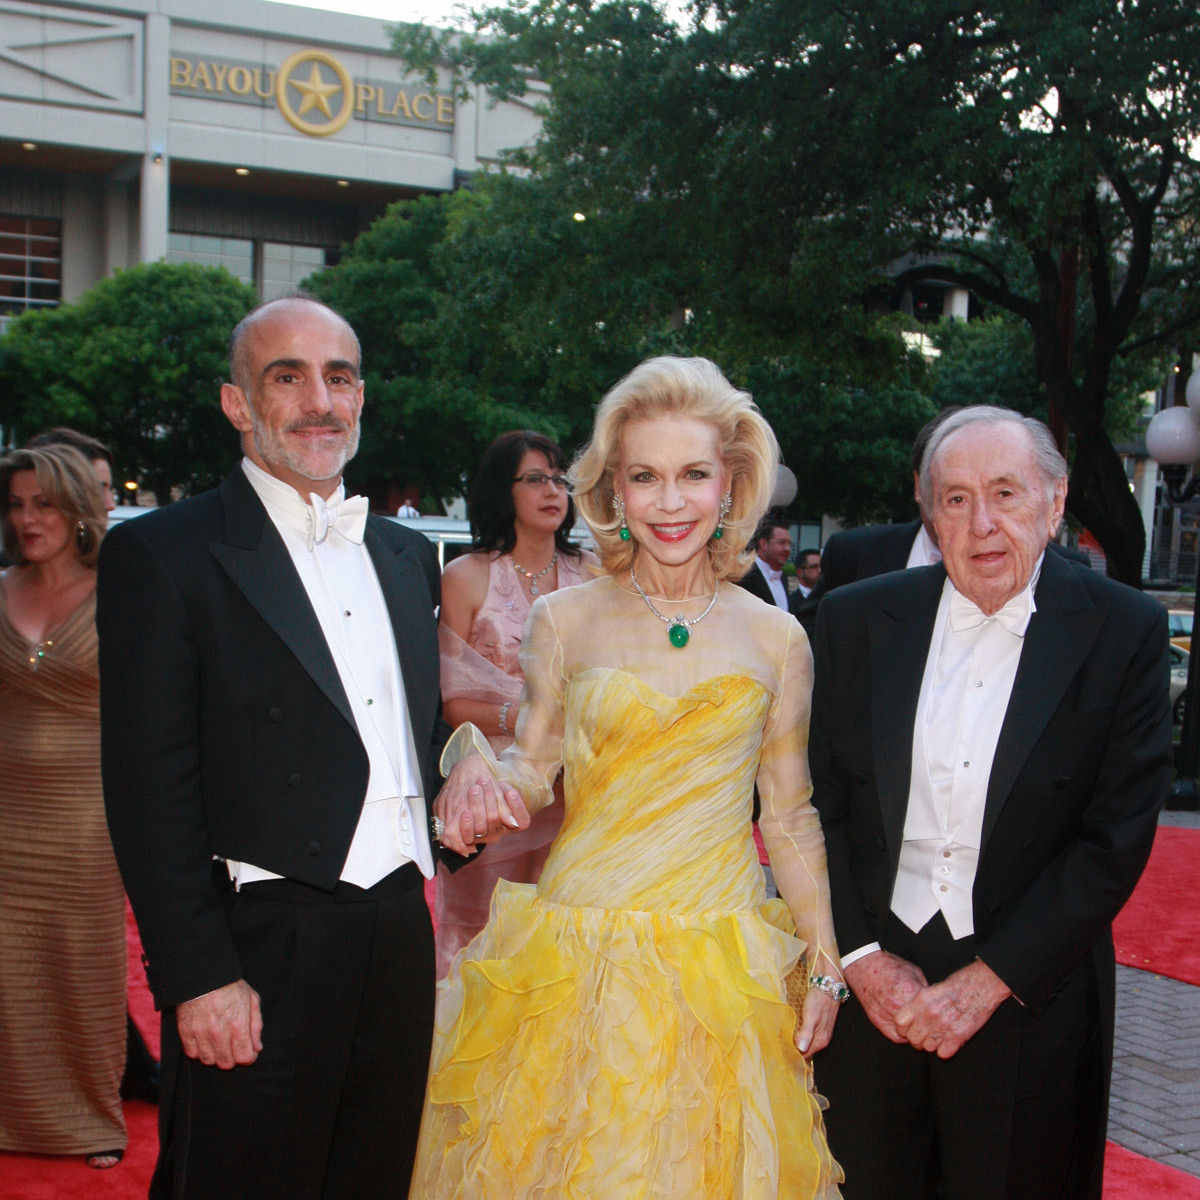 News_Opera Ball_April 2010_Prince Talal of Jordan_Oscar Wyatt_Lynn Wyatt_April 2010